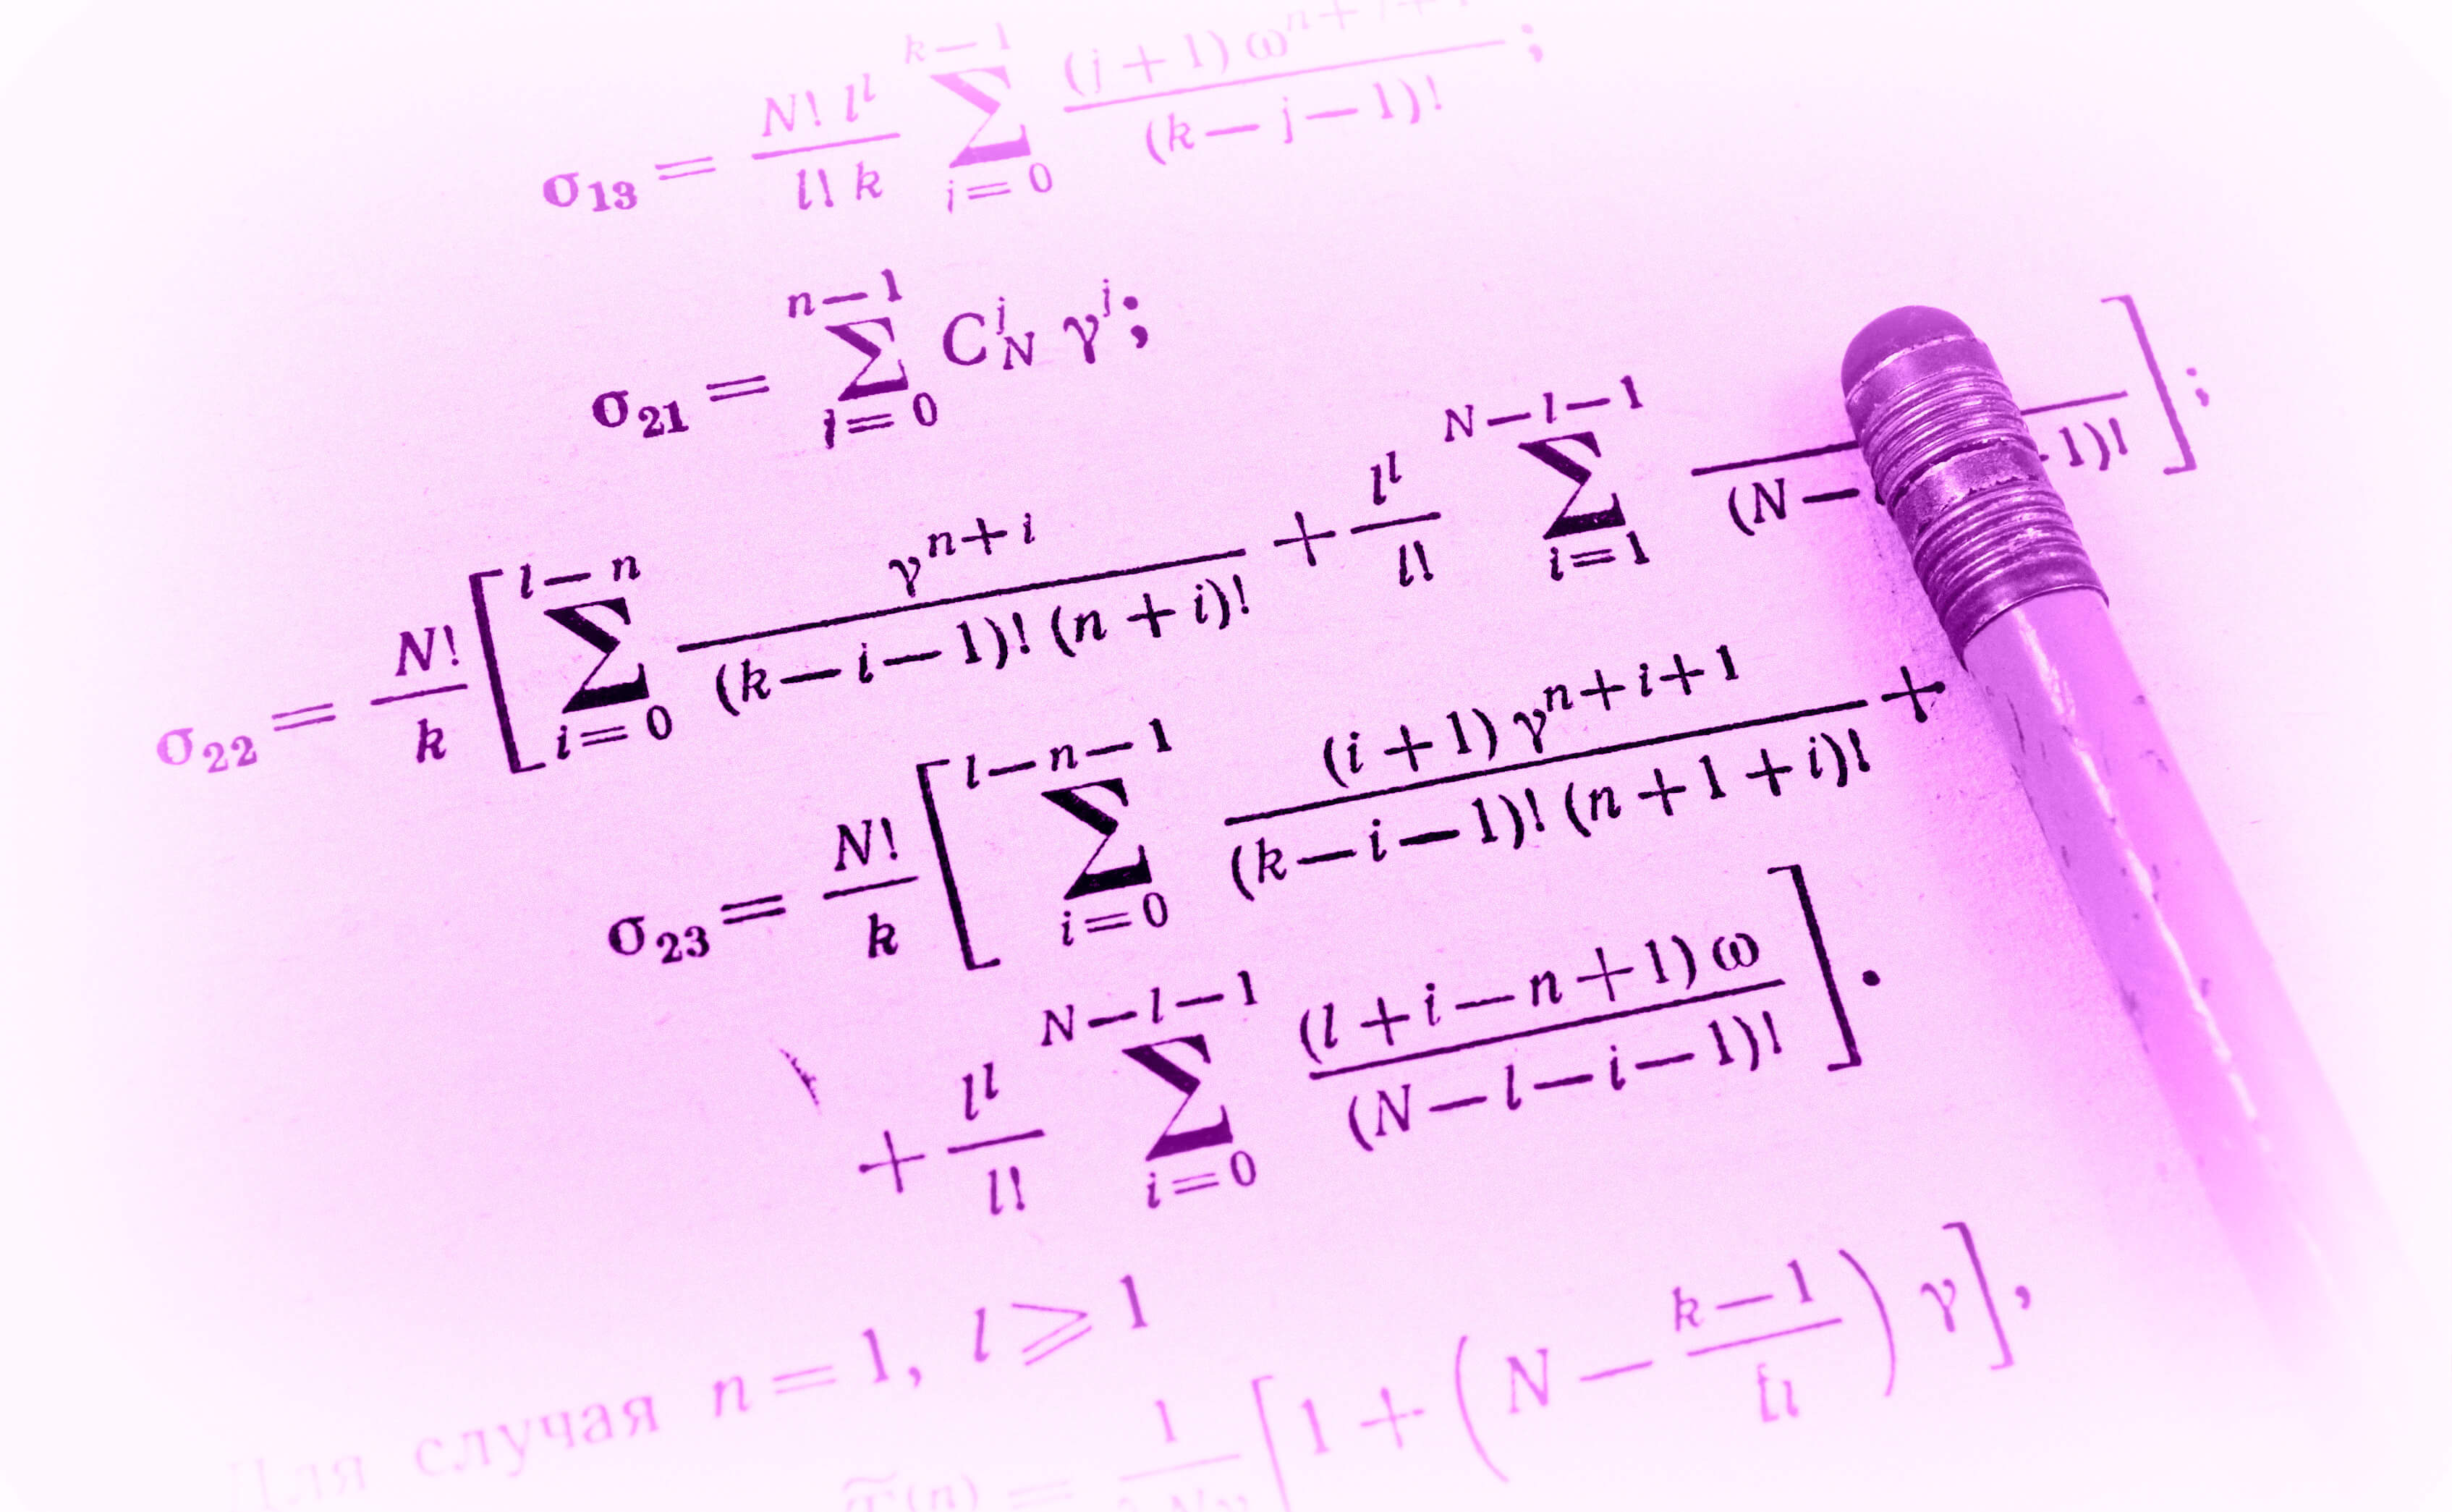 Mathematical equations on paper